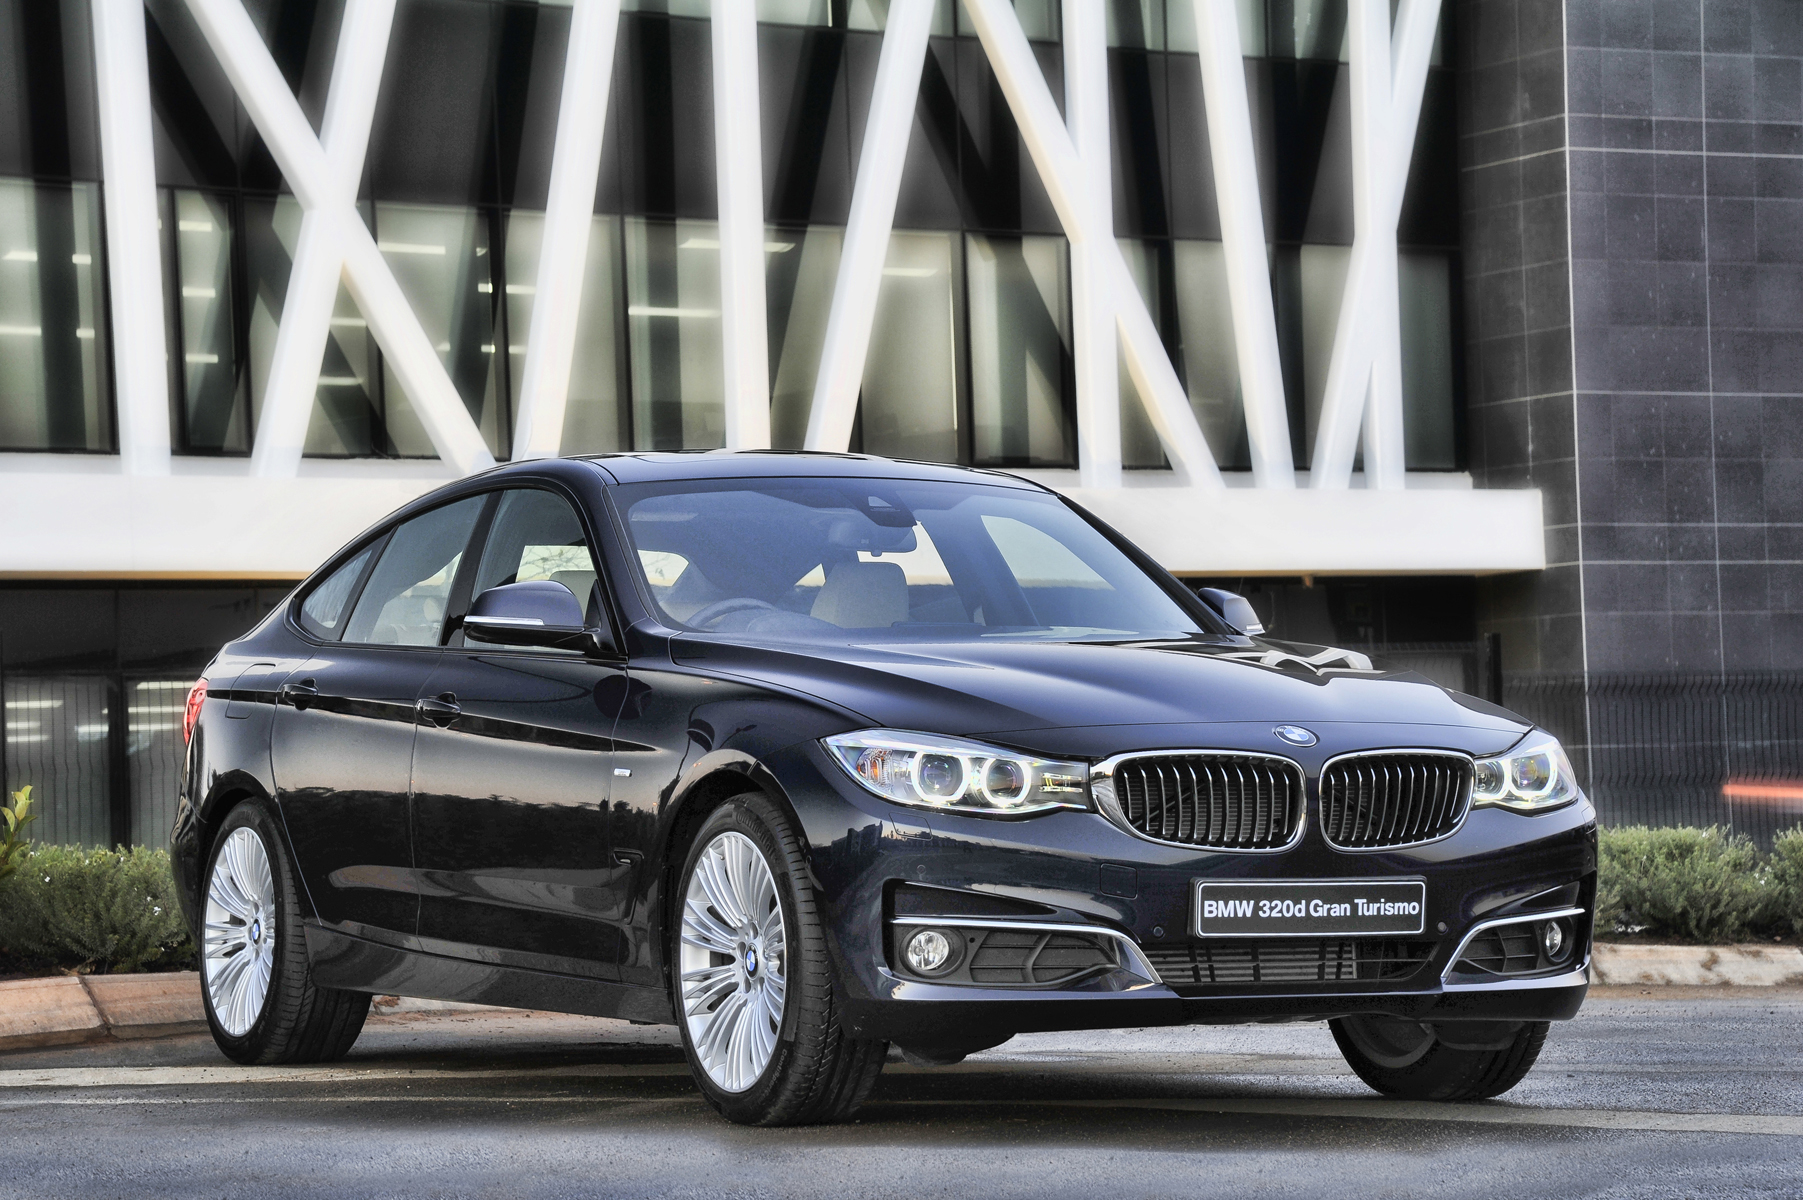 bmw gran turismo 320d news of the week bizmotoring thegandra naidoo. Black Bedroom Furniture Sets. Home Design Ideas